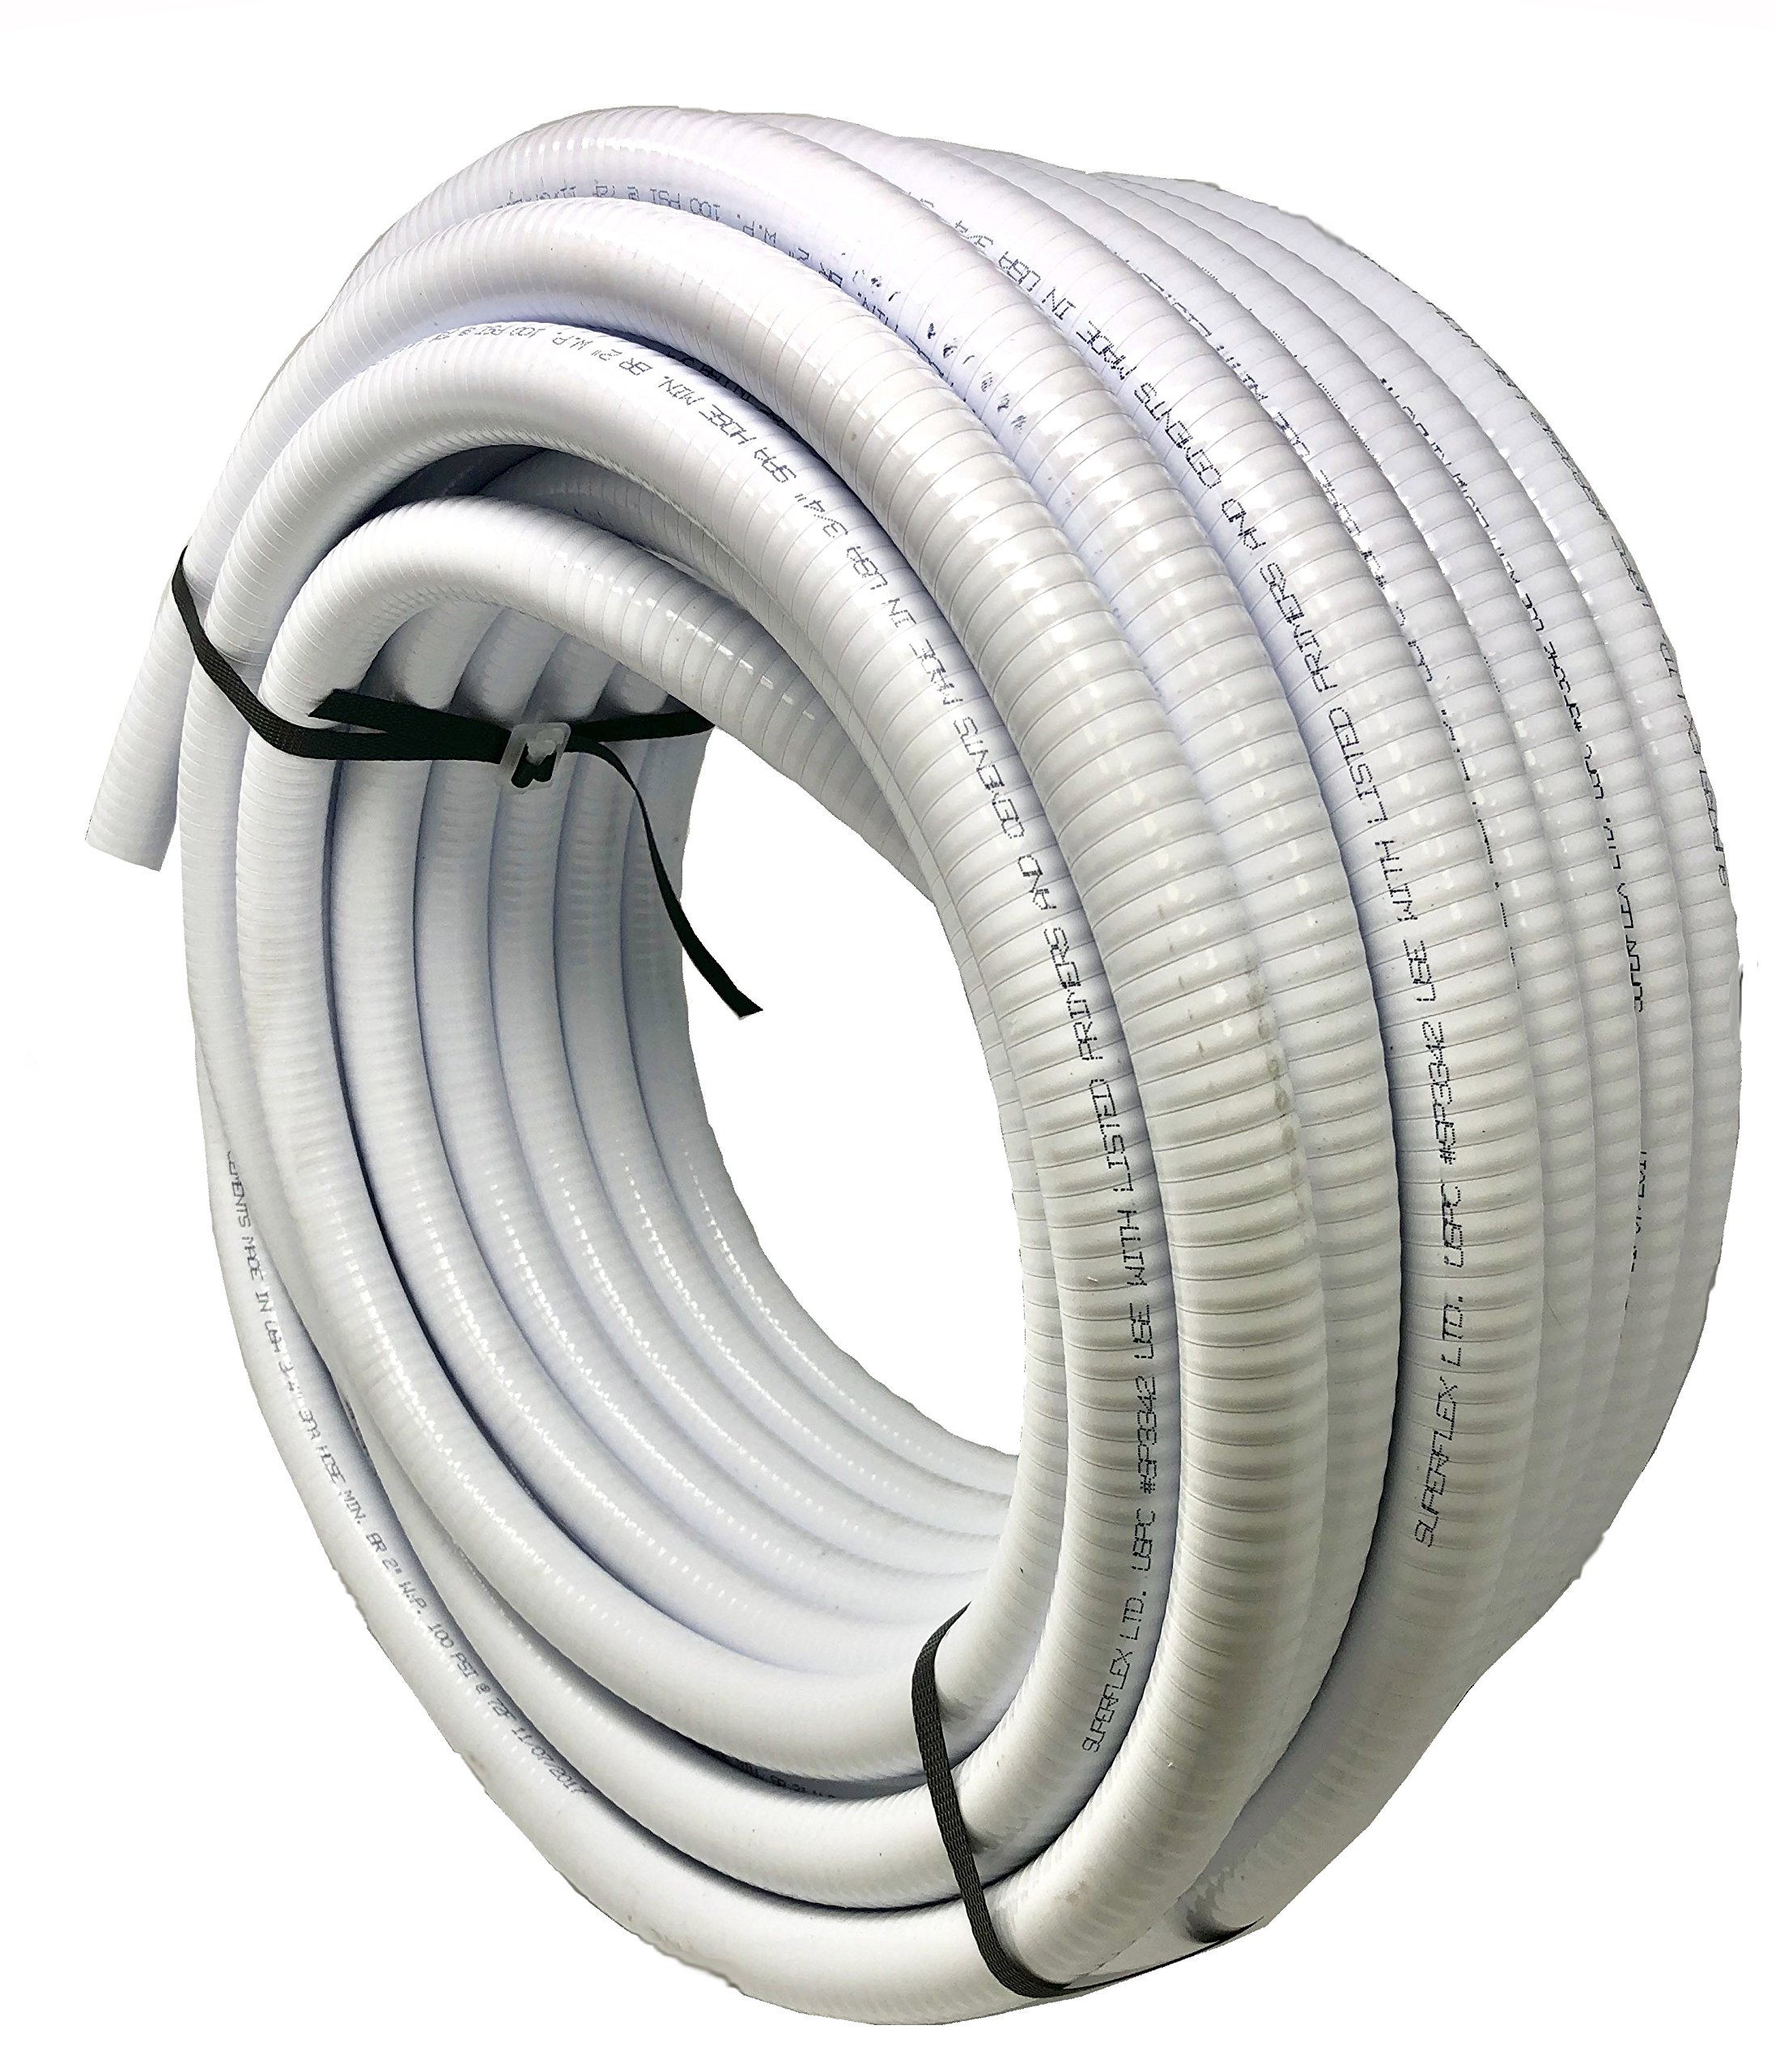 Sealproof 1-1/2'' Dia Flexible PVC Pipe, Pool and Spa Hose Tubing for Hot Tubs and Swimming Pools, Pump Filters, Pond Hose, Made in USA, 1.5-Inch, 25 FT, White by Sealproof